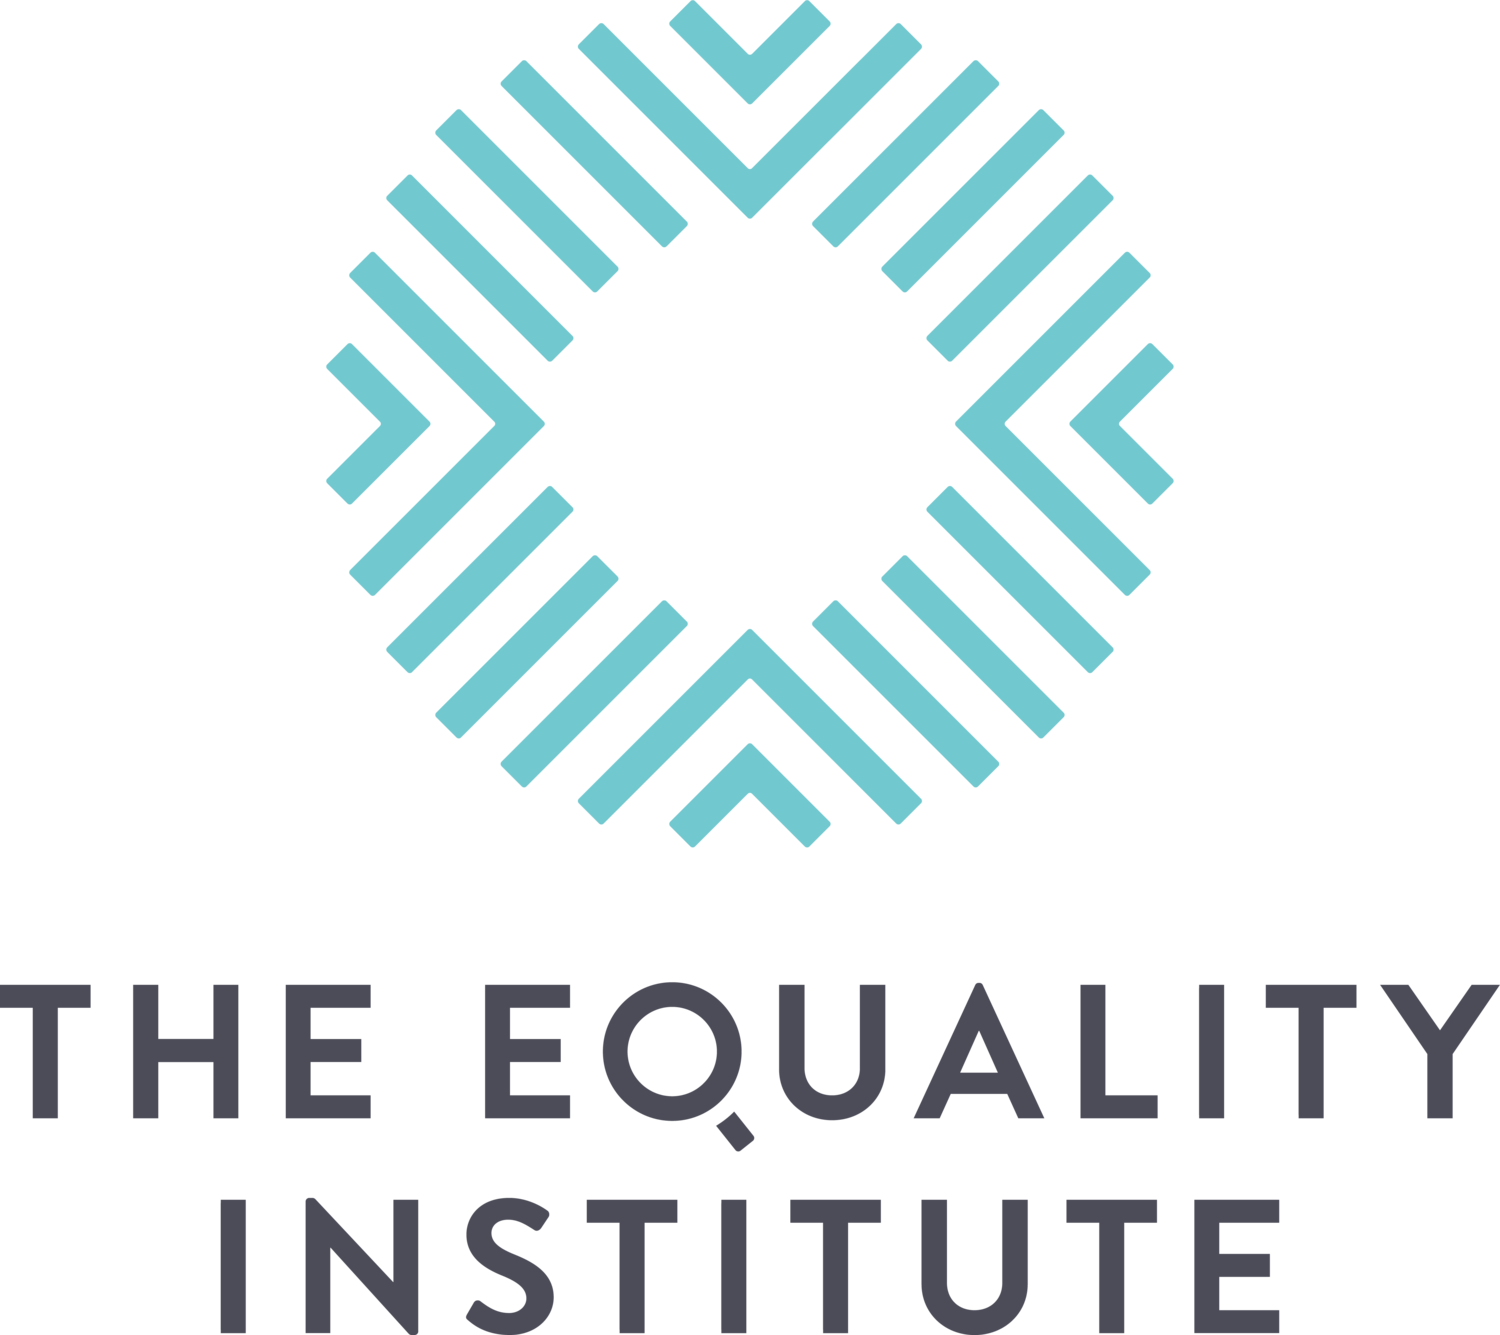 The EQUALITY INSTITUTE